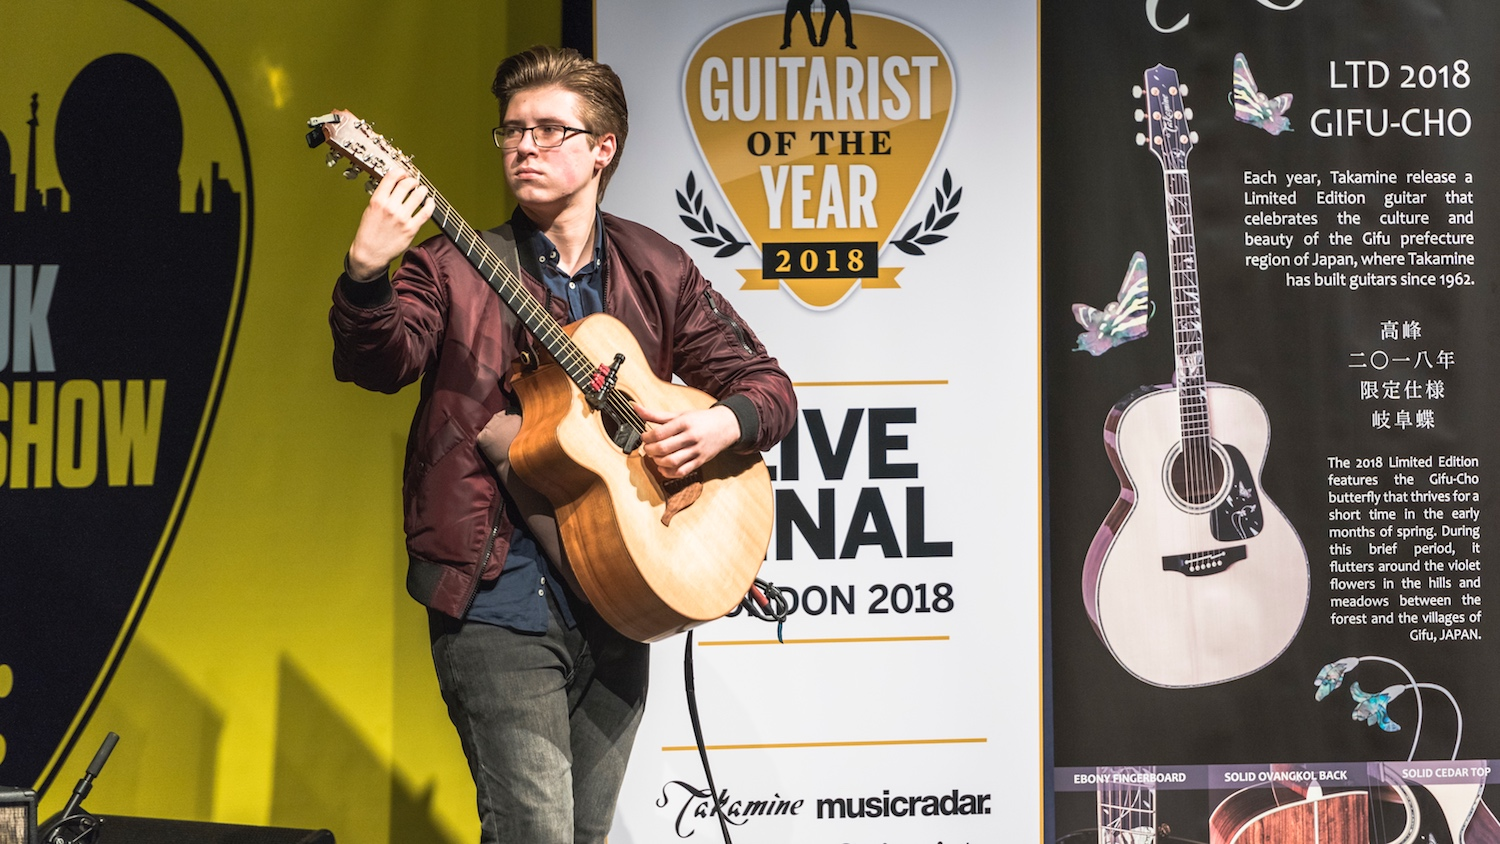 Want to win Acoustic Guitarist of the Year 2019? Last year's